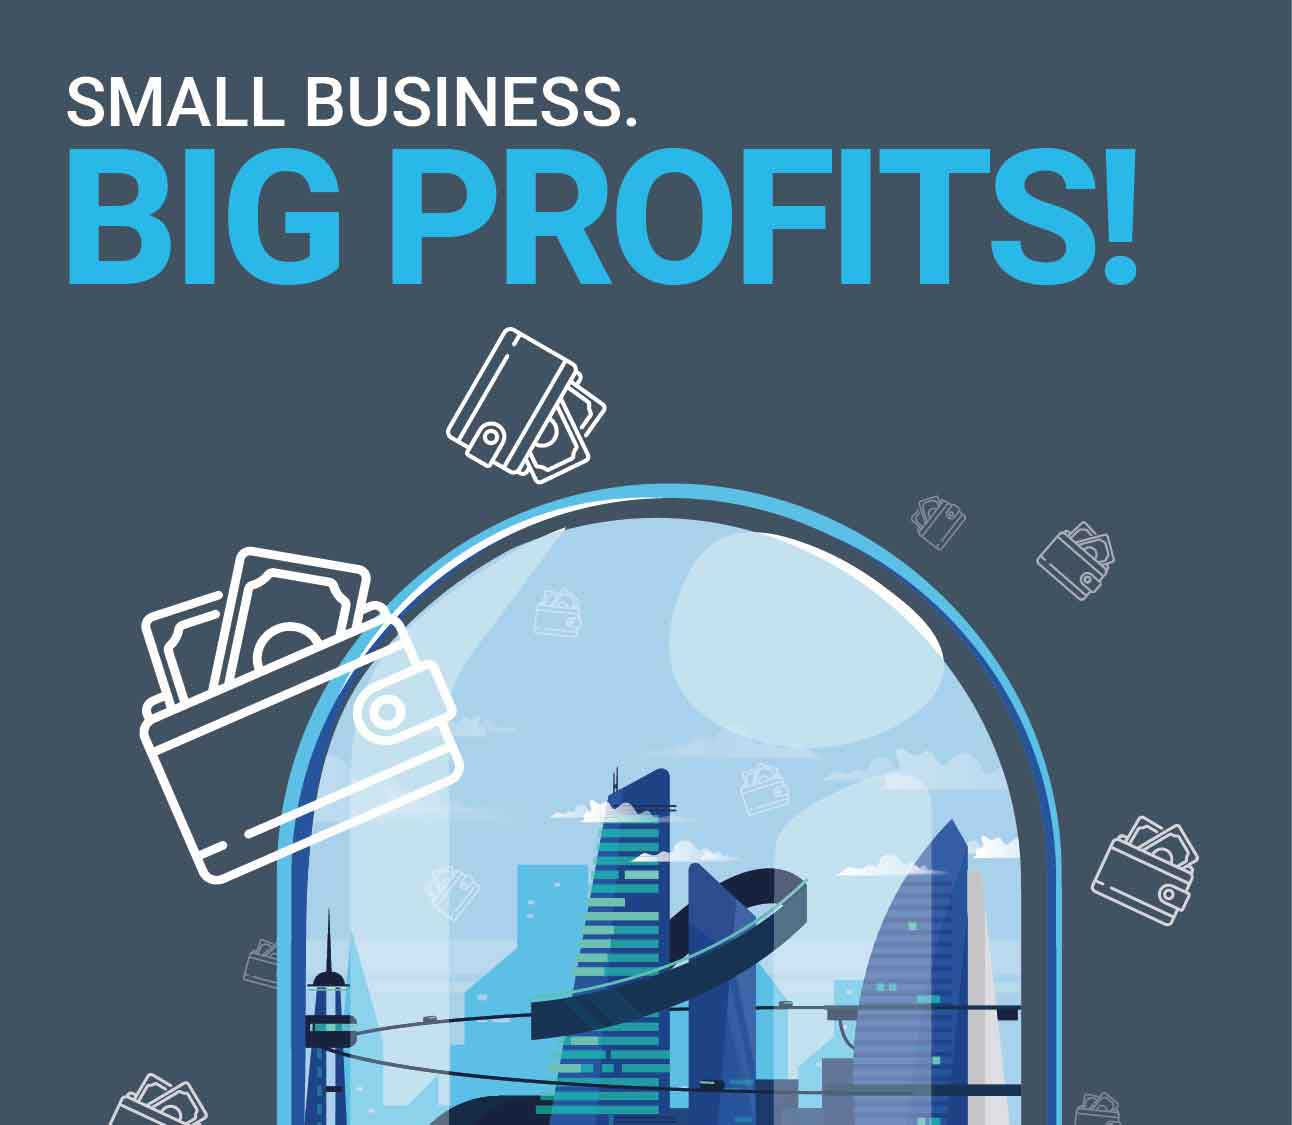 Small Business Featured Image